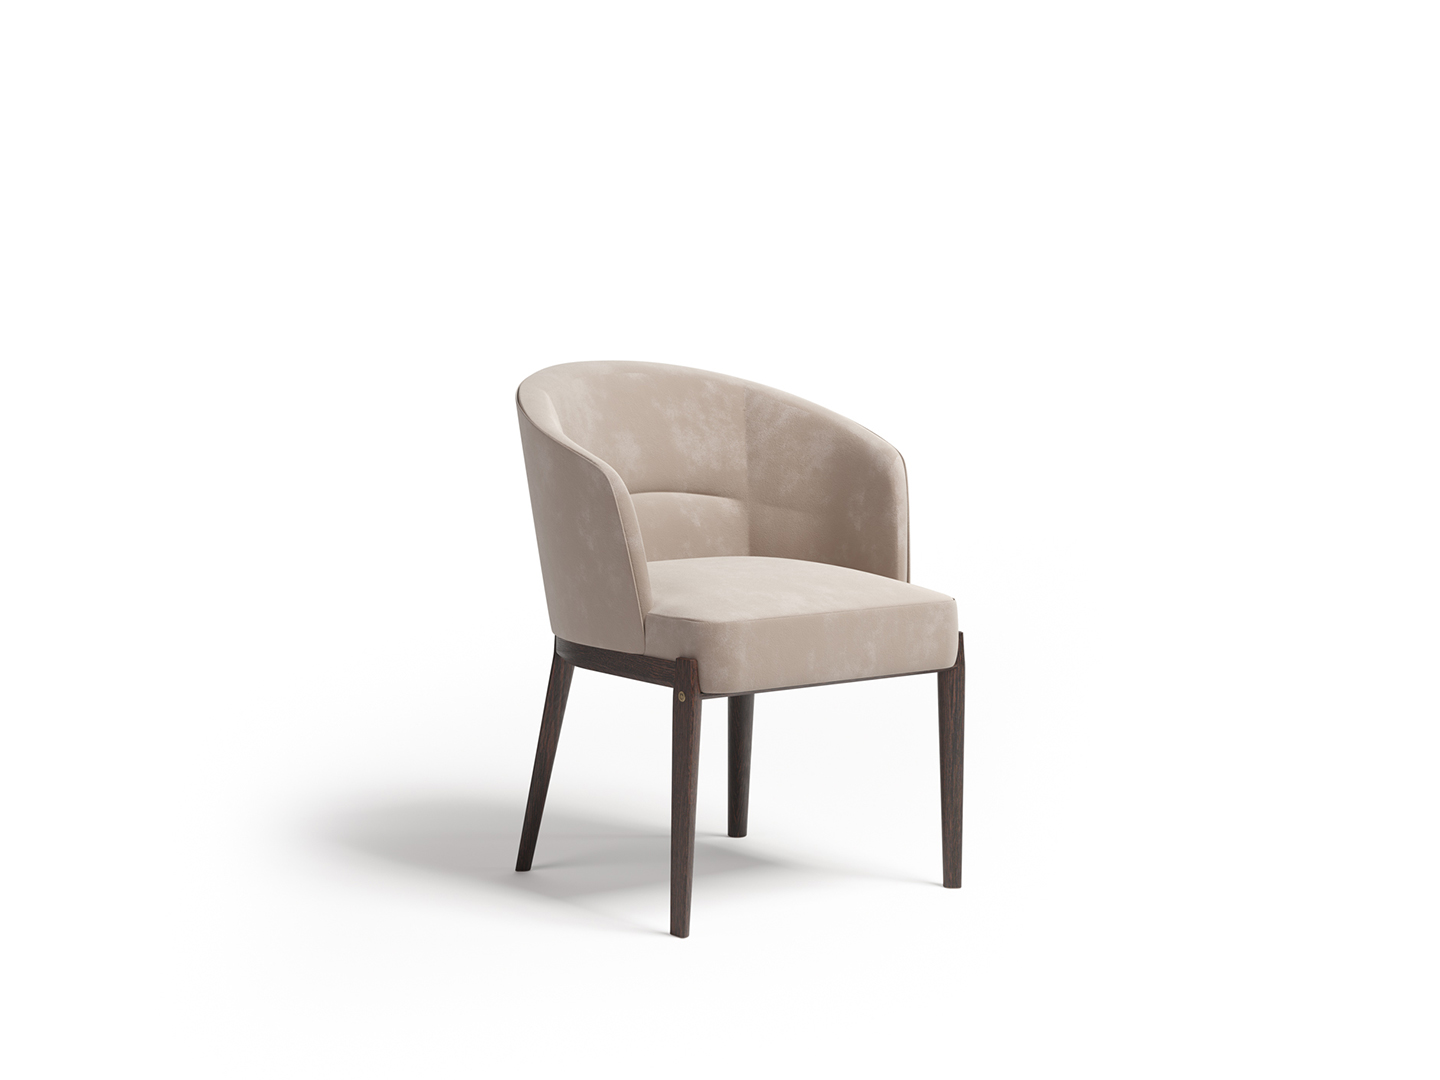 N°5 low chair